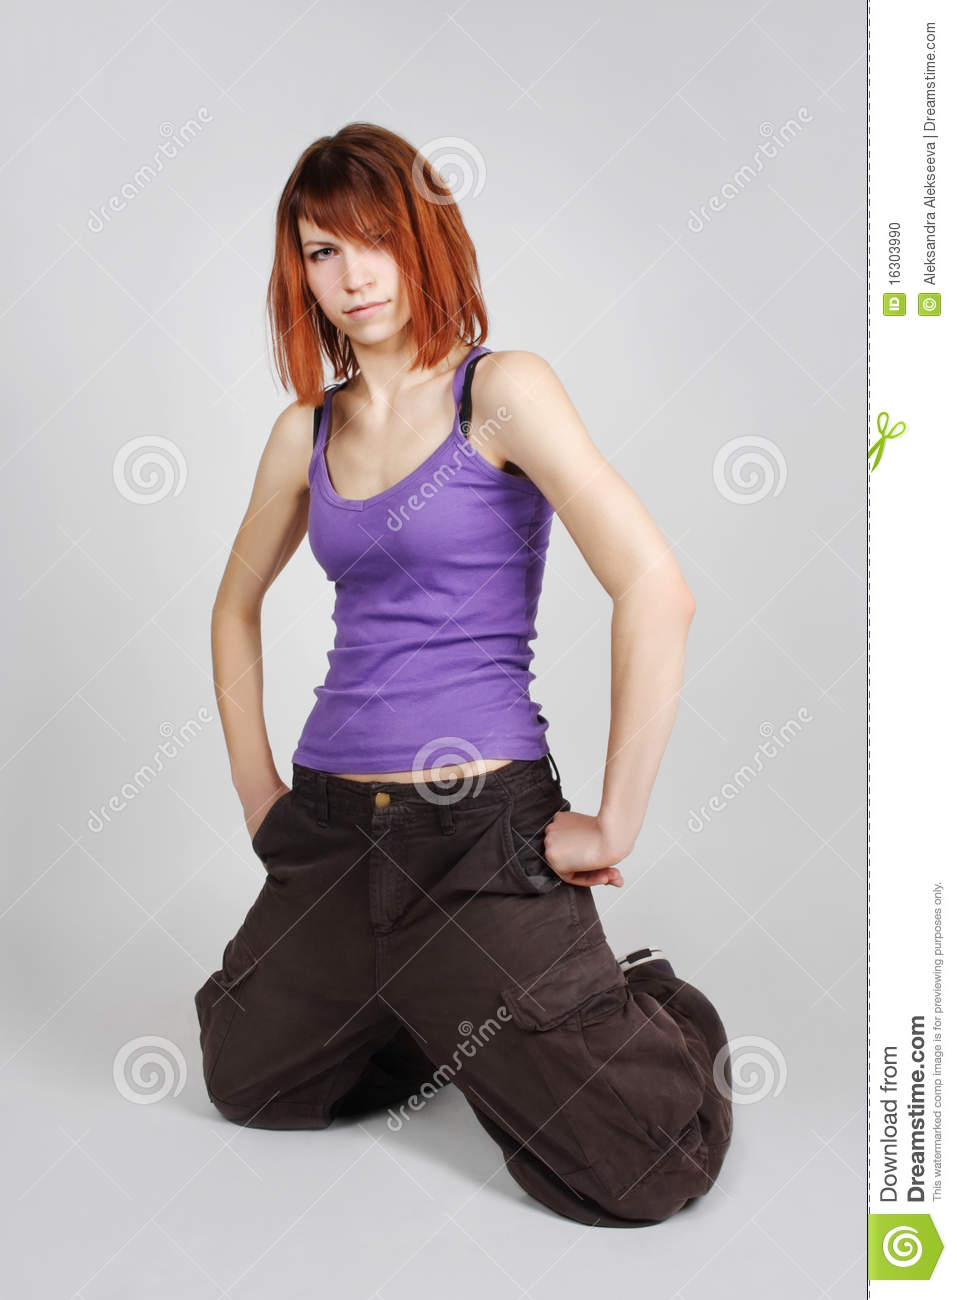 Girl In Hip-Hop Clothes Sitting On Knees Stock Photo -1487